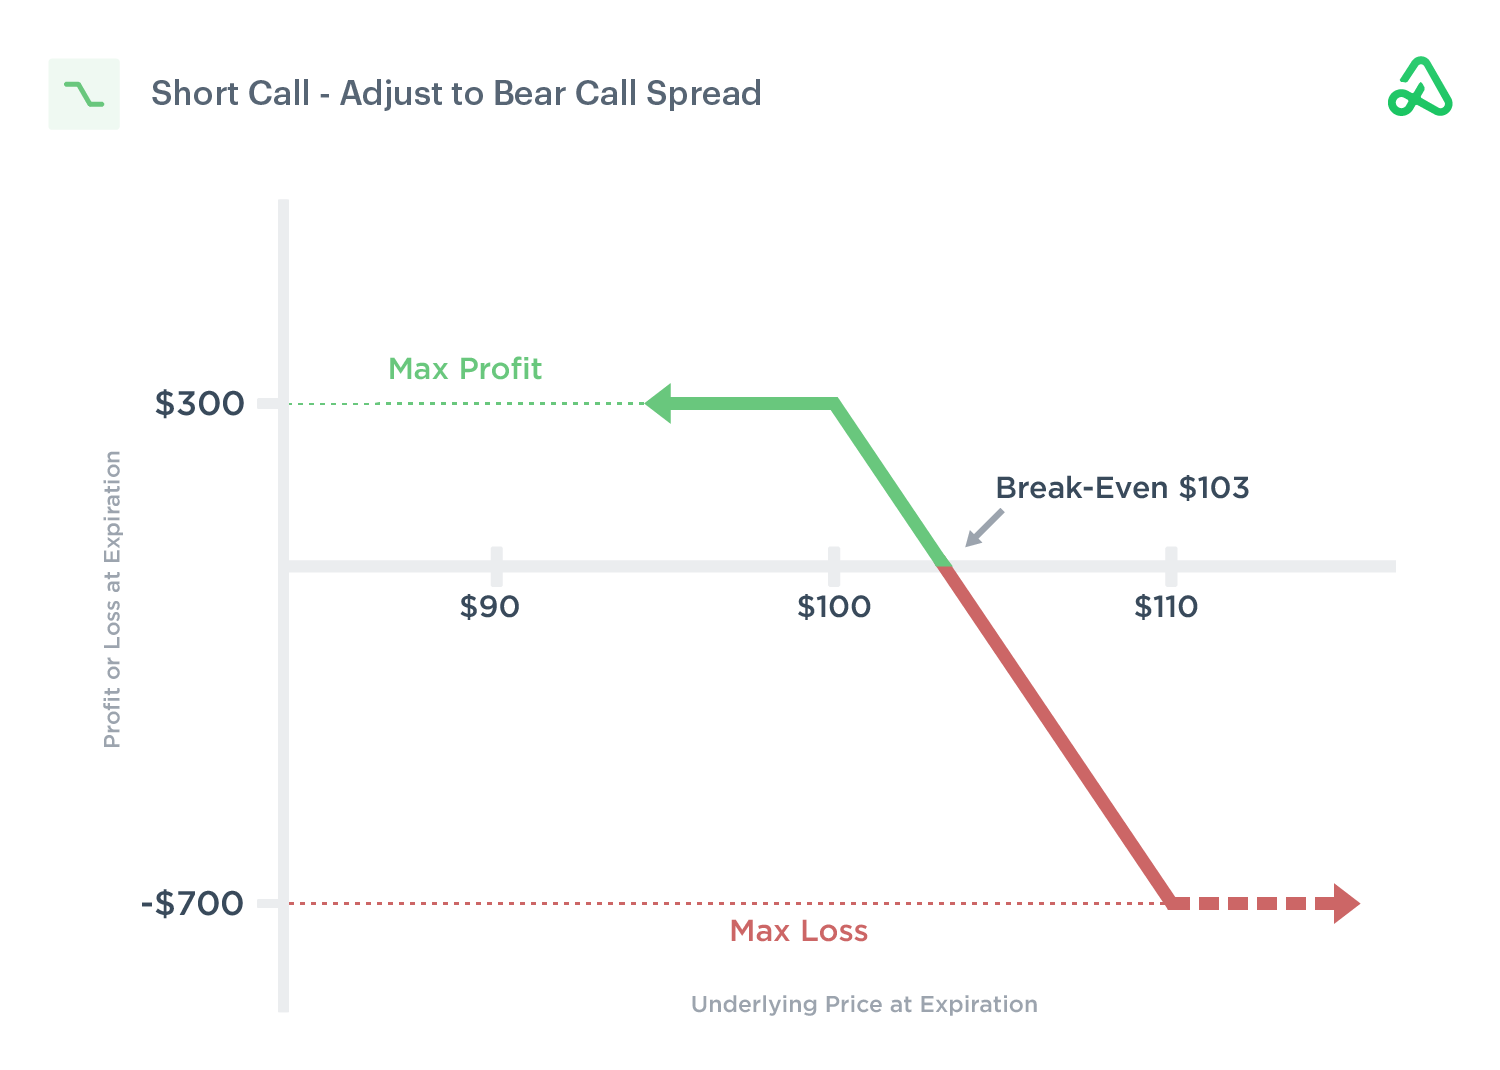 Image of a short call adjusted to a bear call credit spread